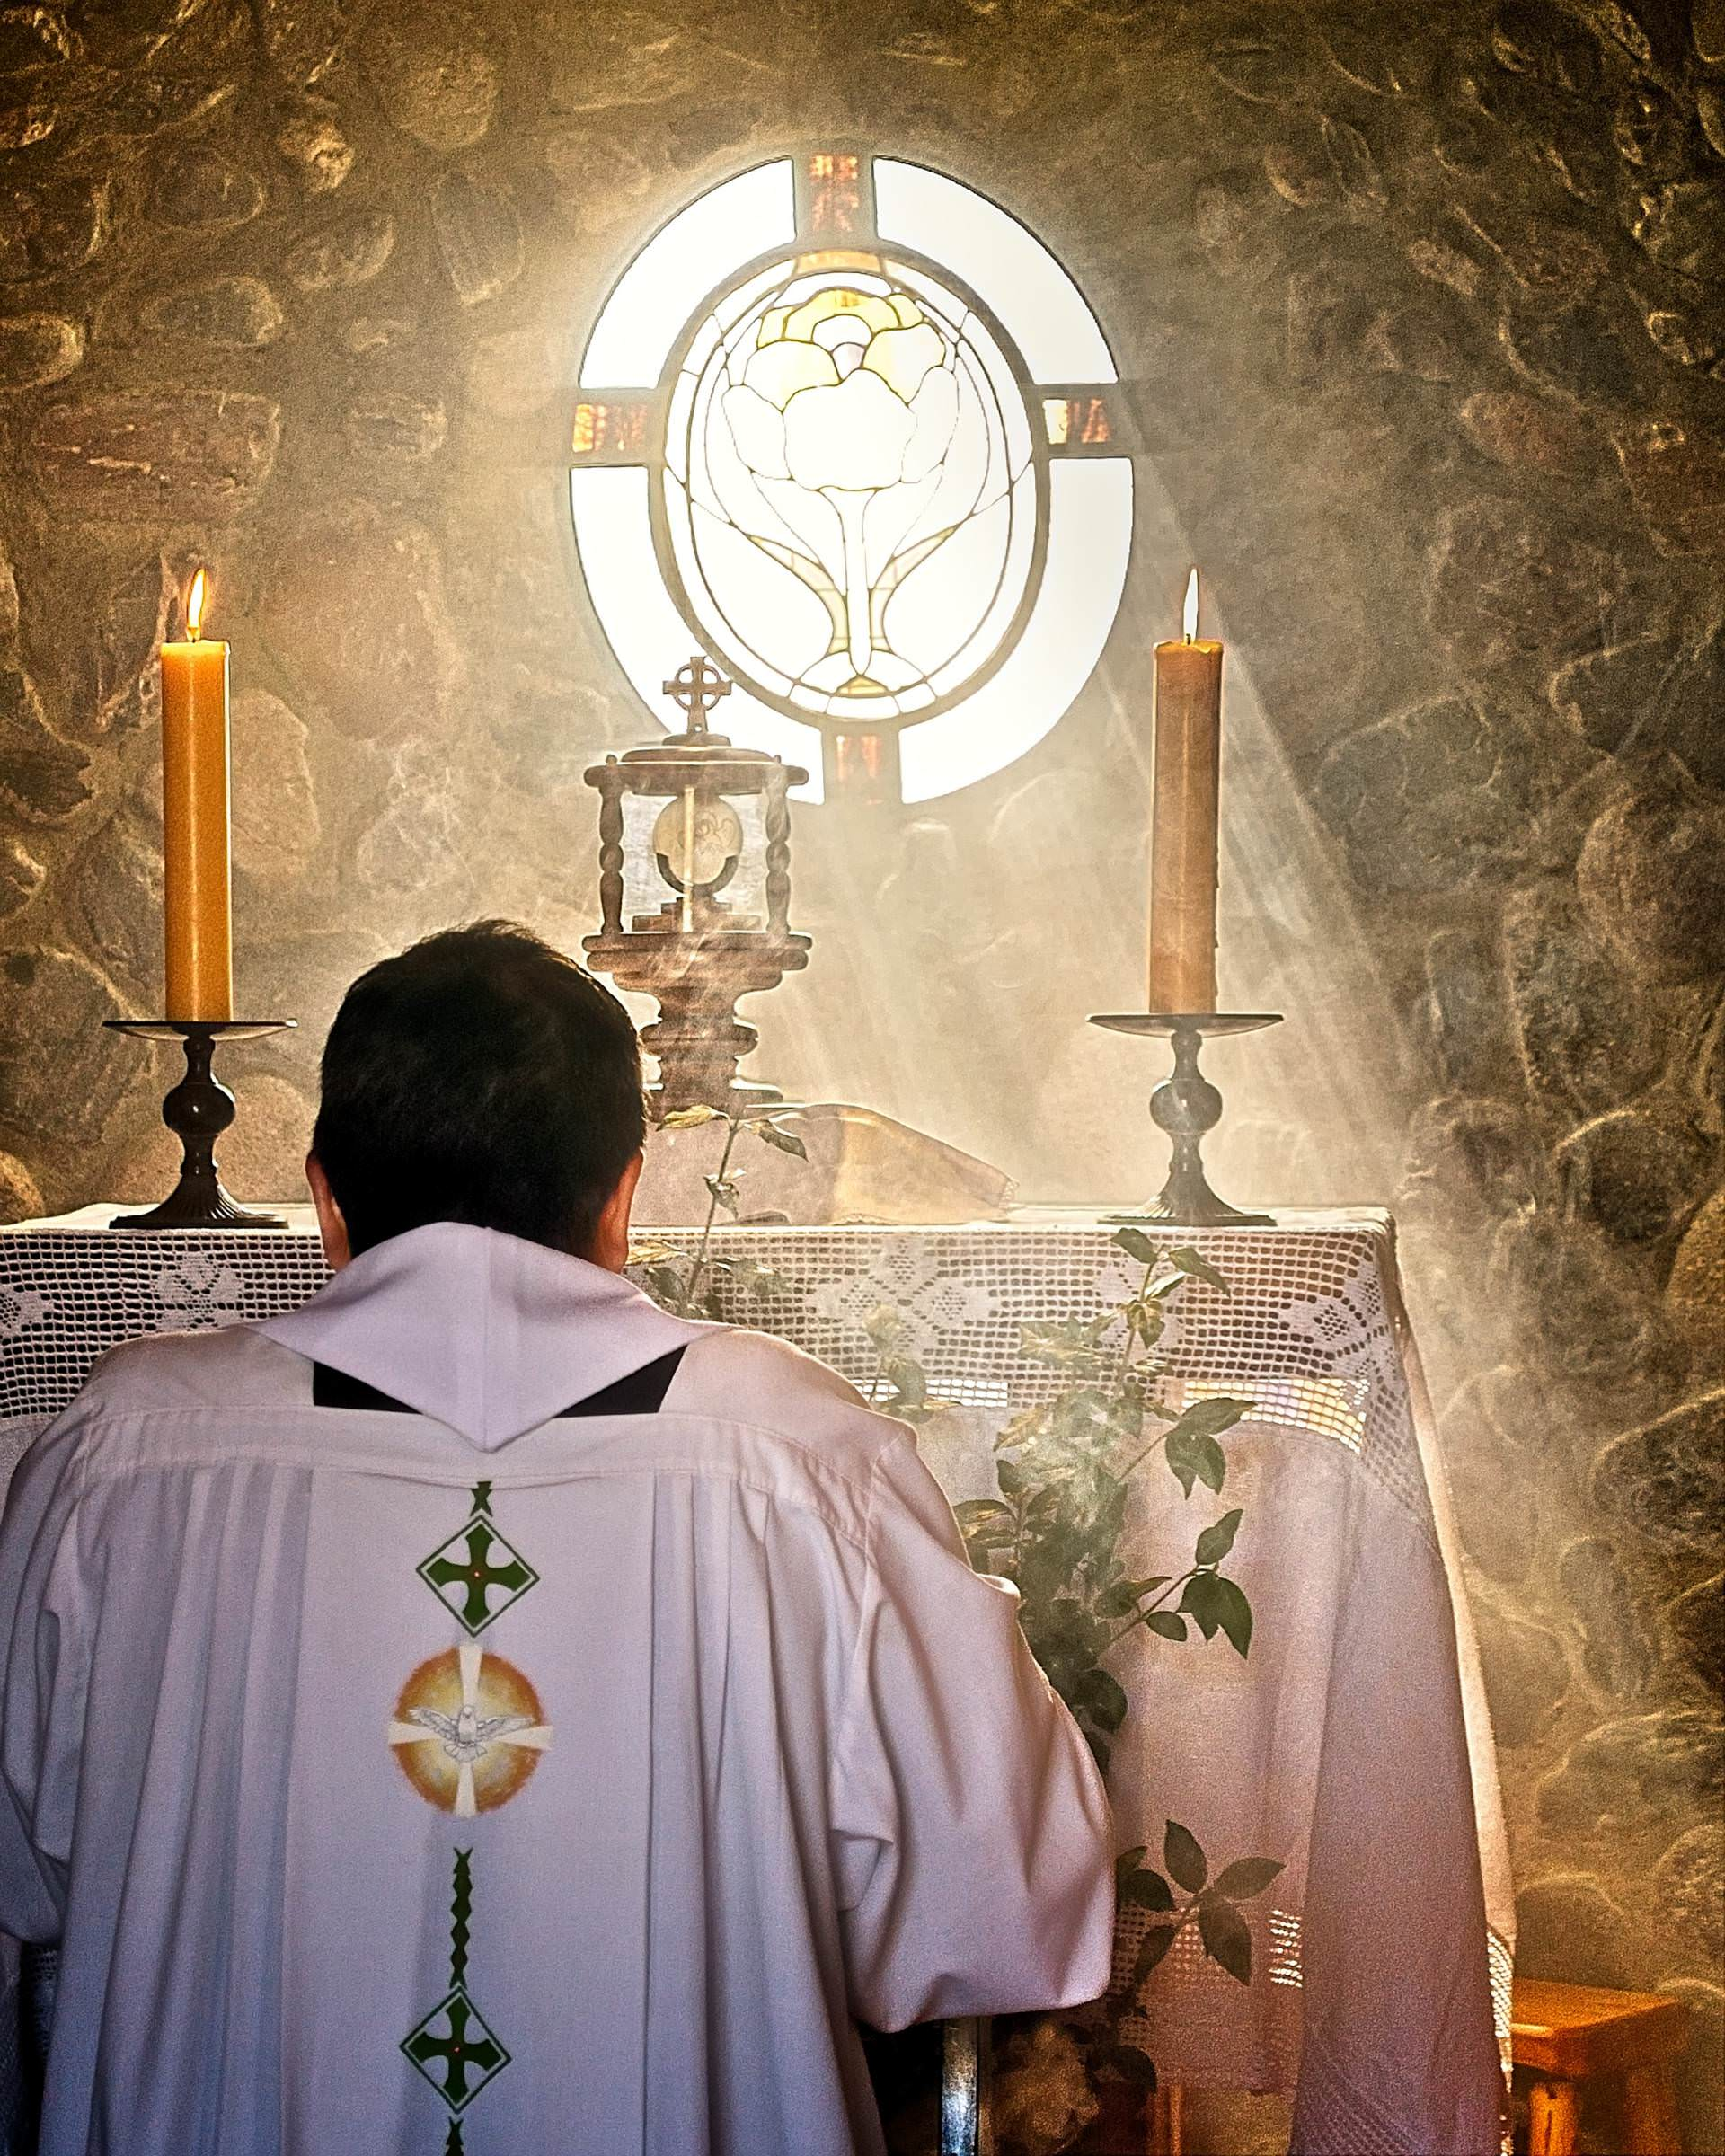 presbyter, care, priest, father, on knees, sun ray, exposition, blessed sacrament, worship, to worship, eucharist, bread of life, god, king, sir, bread from heaven, body of christ